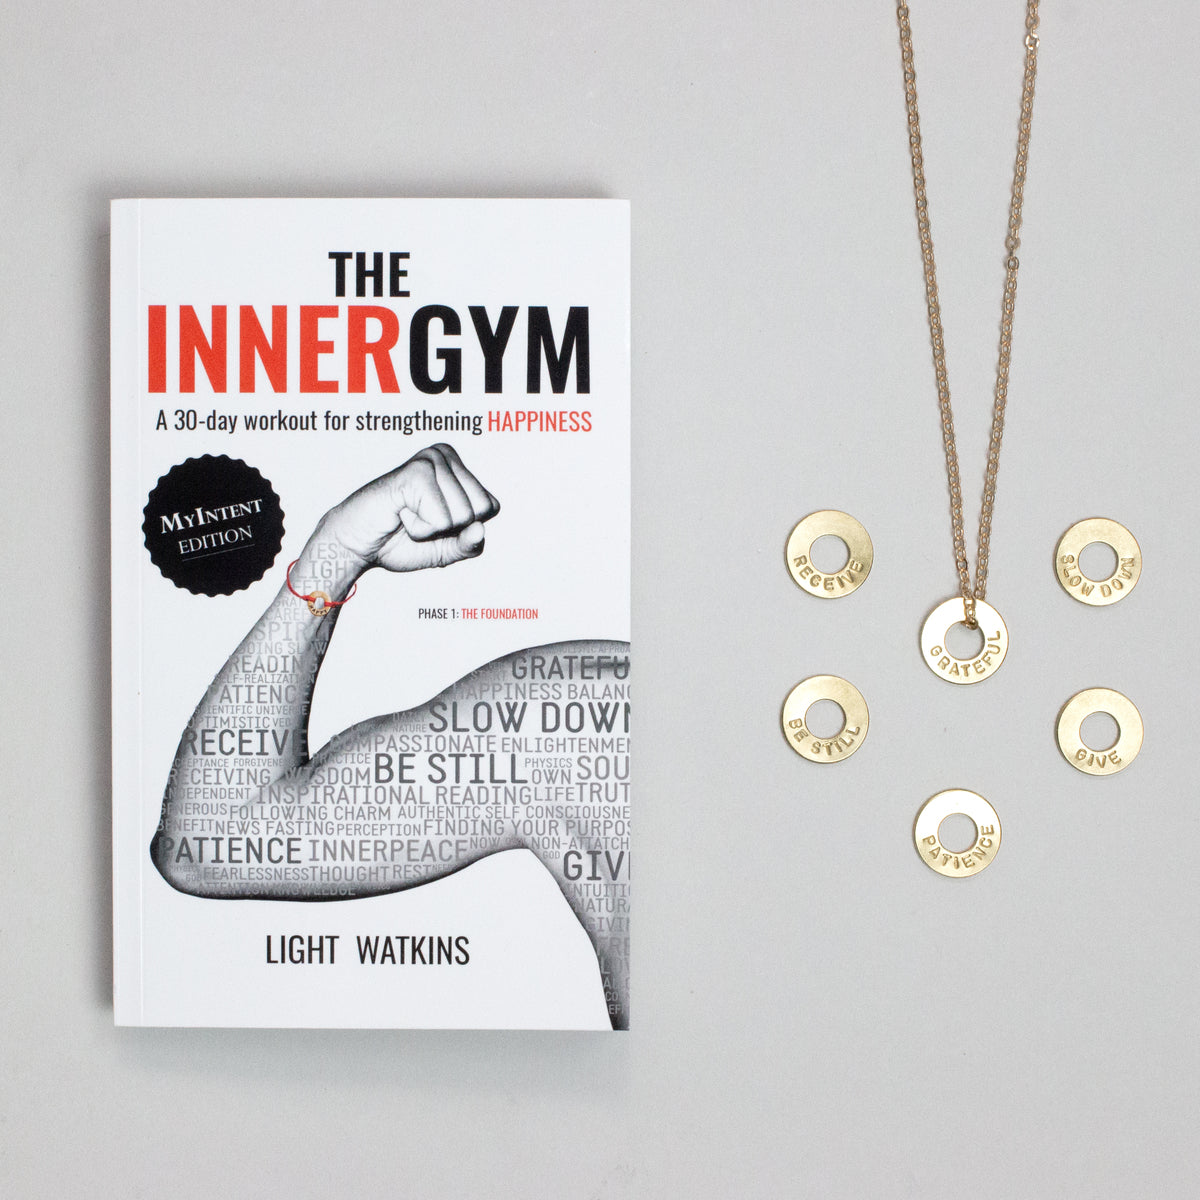 The Inner Gym bundle comes with bracelets or necklaces that correspond to each chapter's lessons